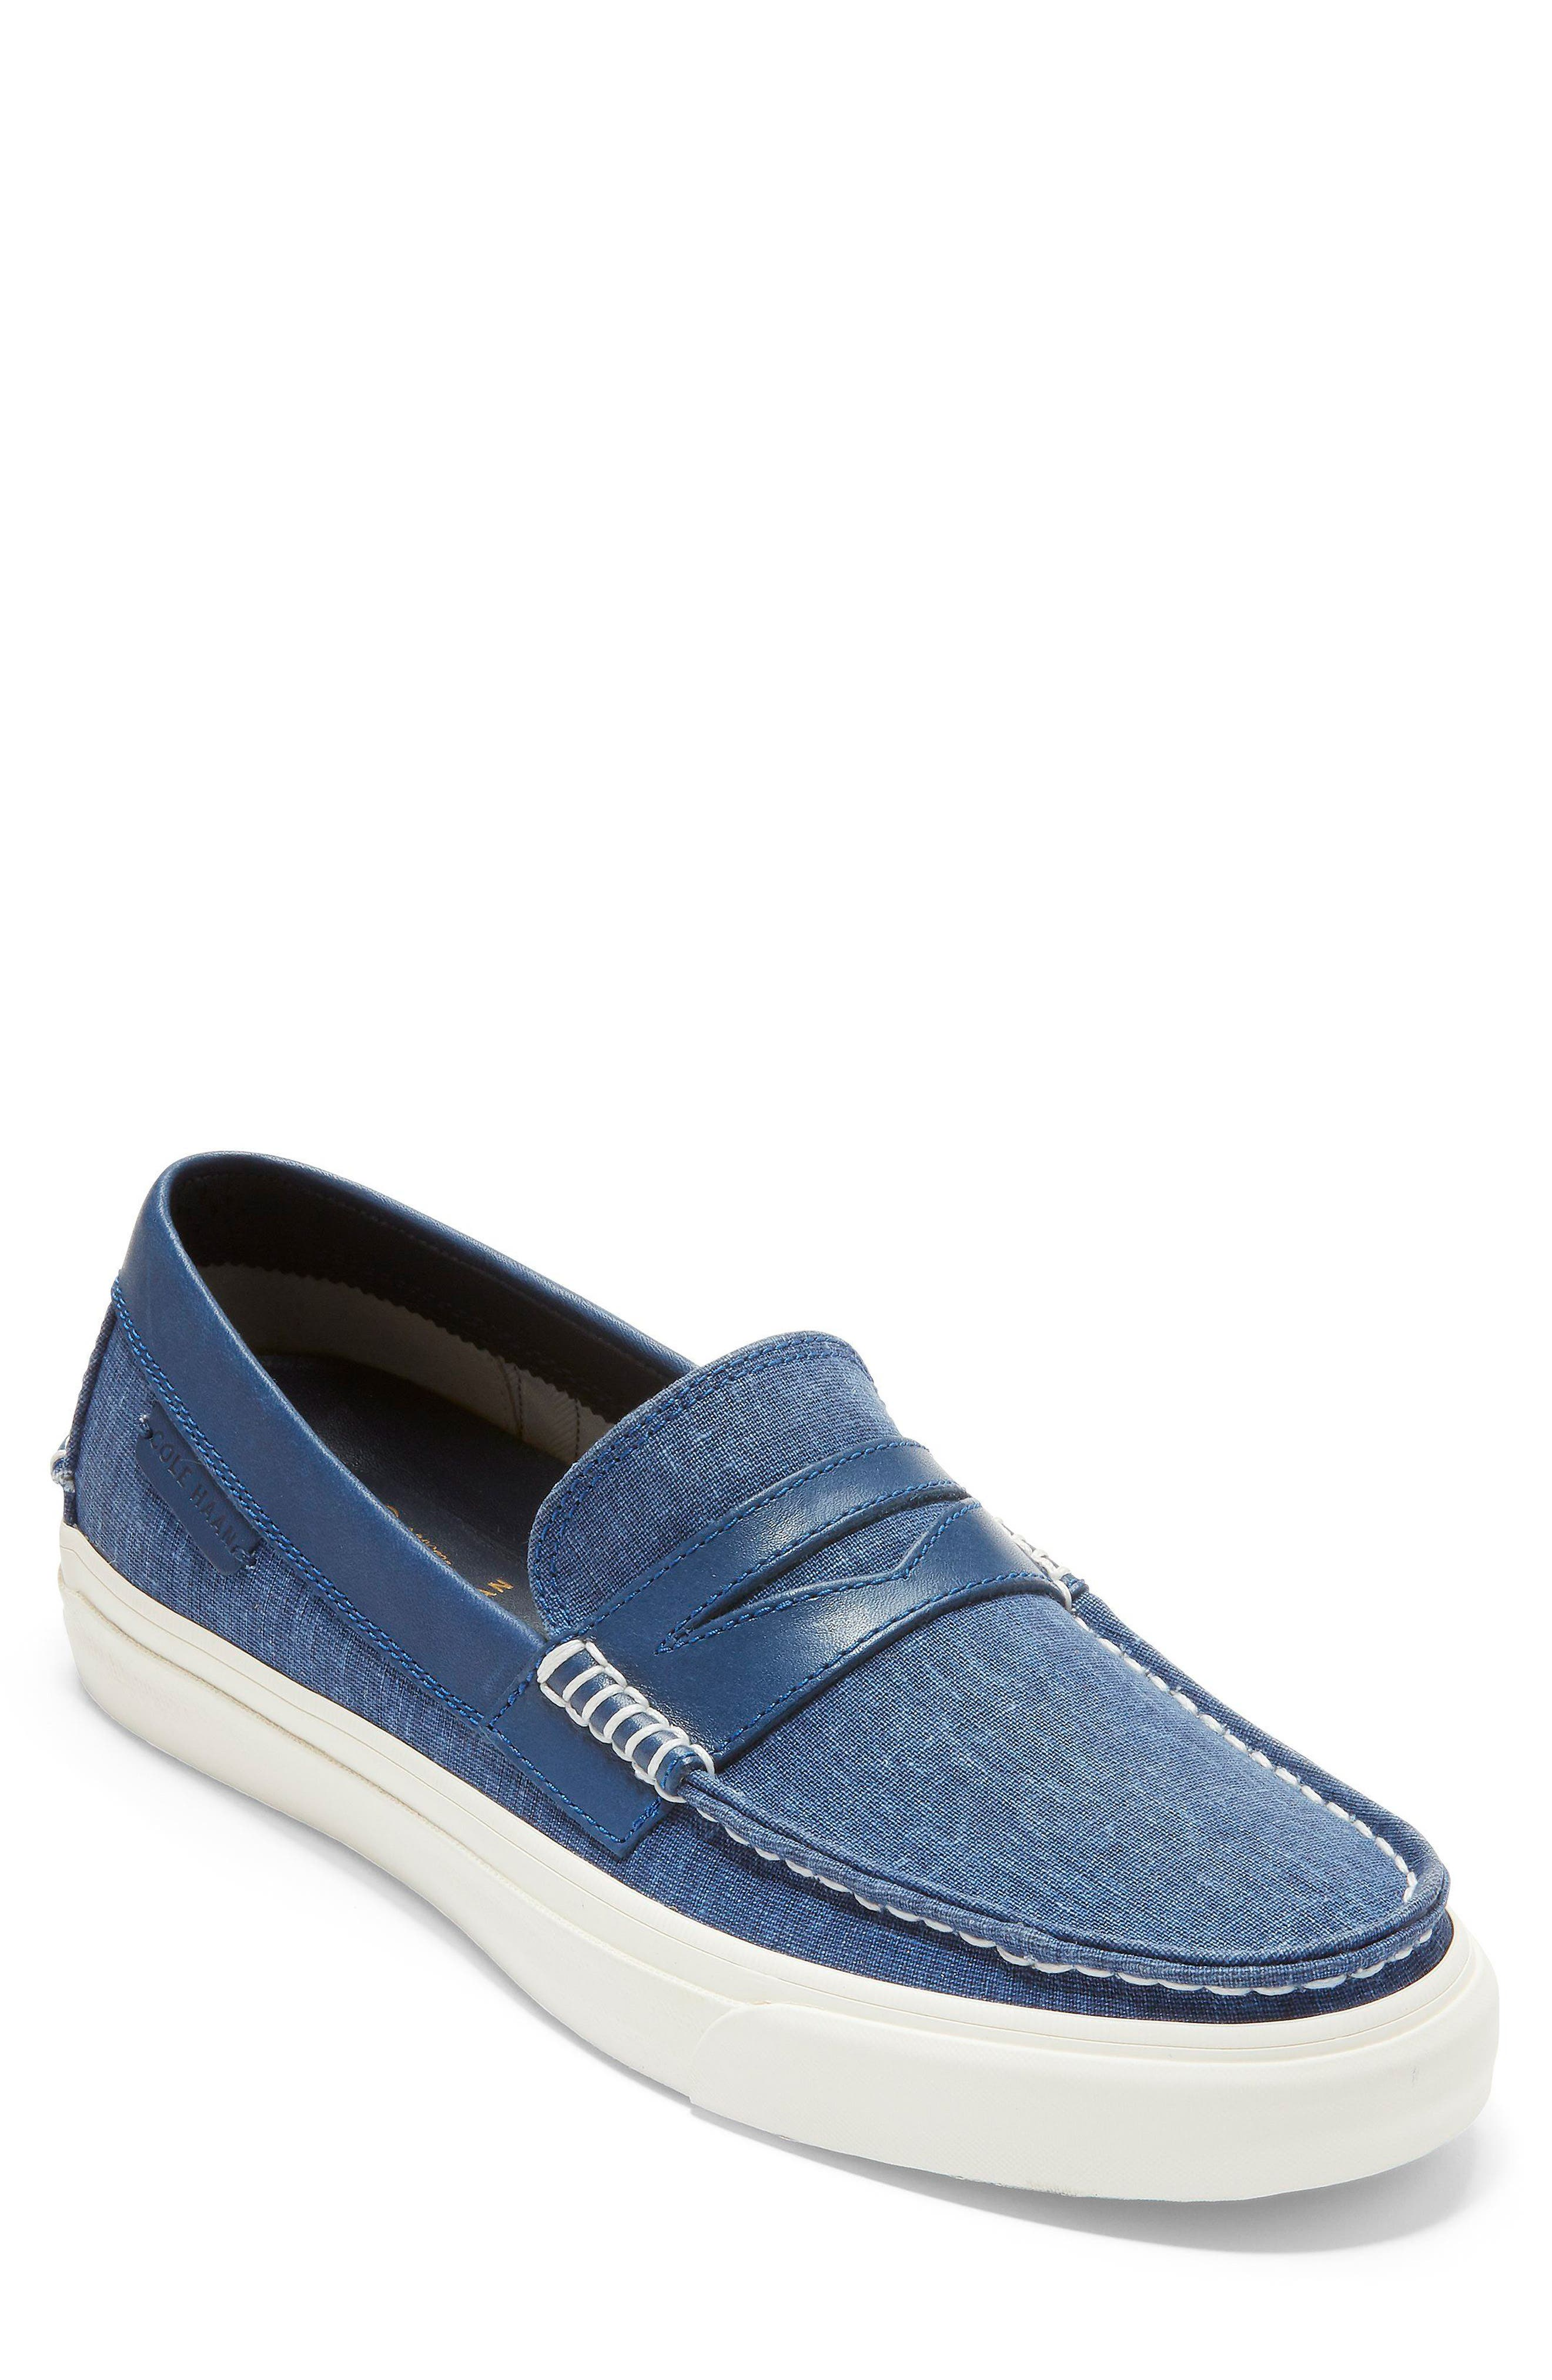 Pinch Weekend LX Penny Loafer,                             Main thumbnail 9, color,